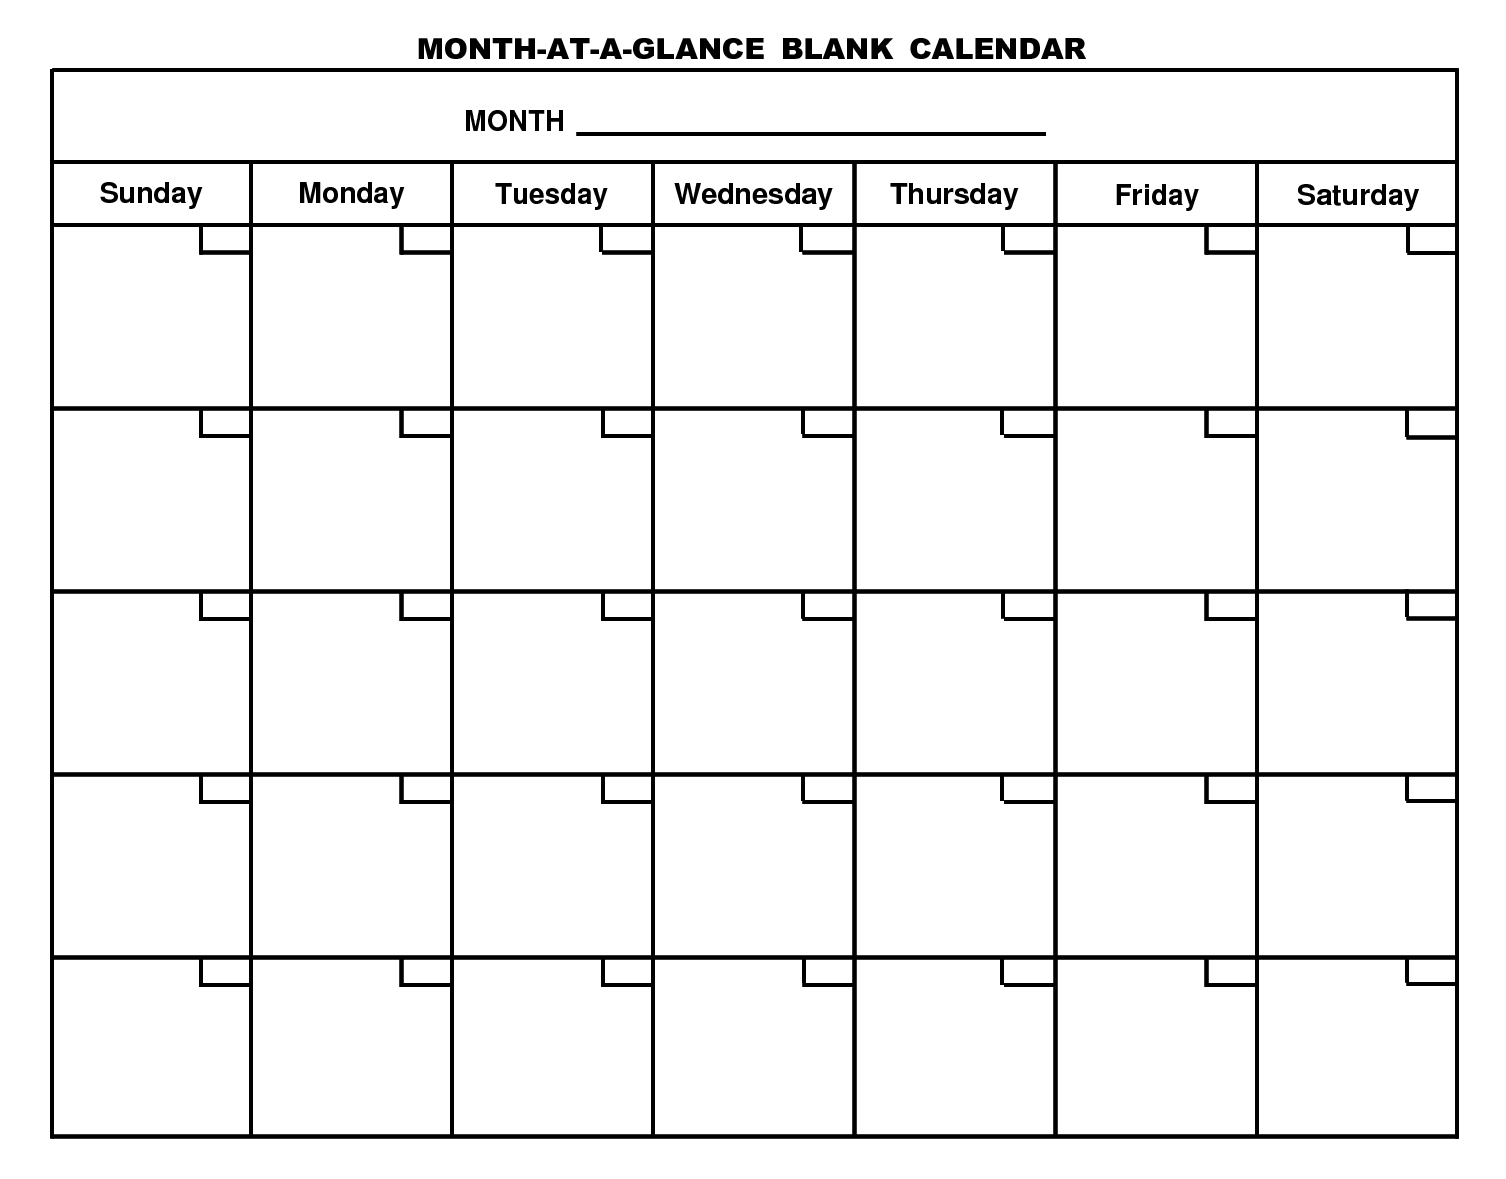 7 Images of Printable 2015 Monthly Blank Calendar Page